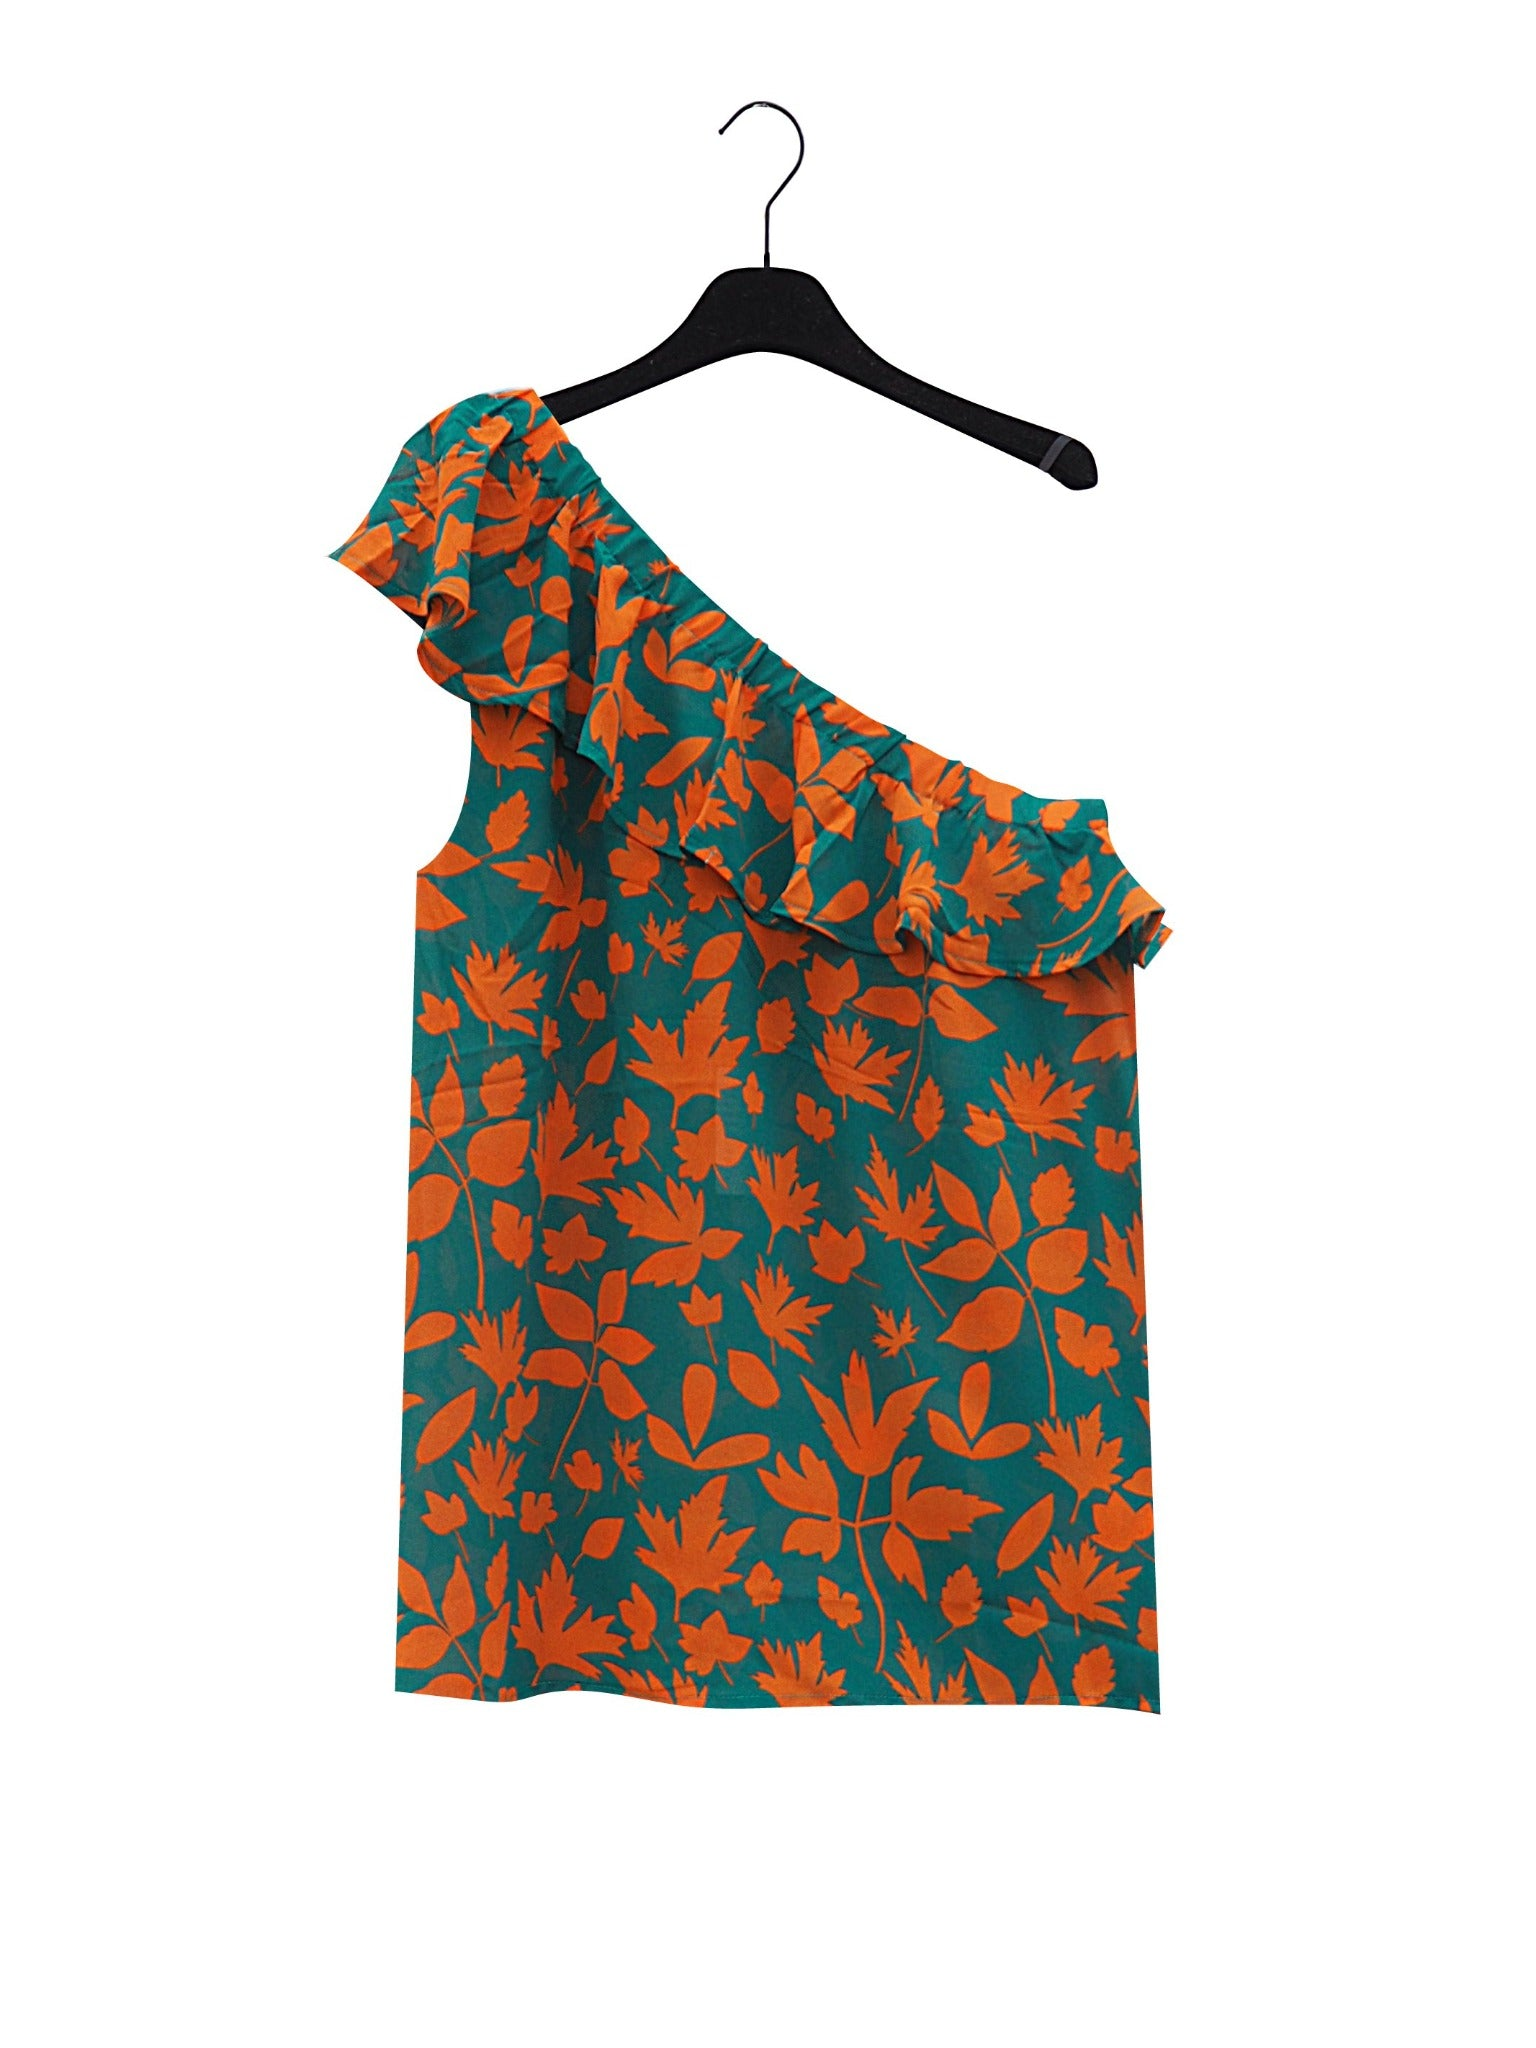 MAEM Blouse MAILA Grass Green and Earth Orange Flower one-shoulder top